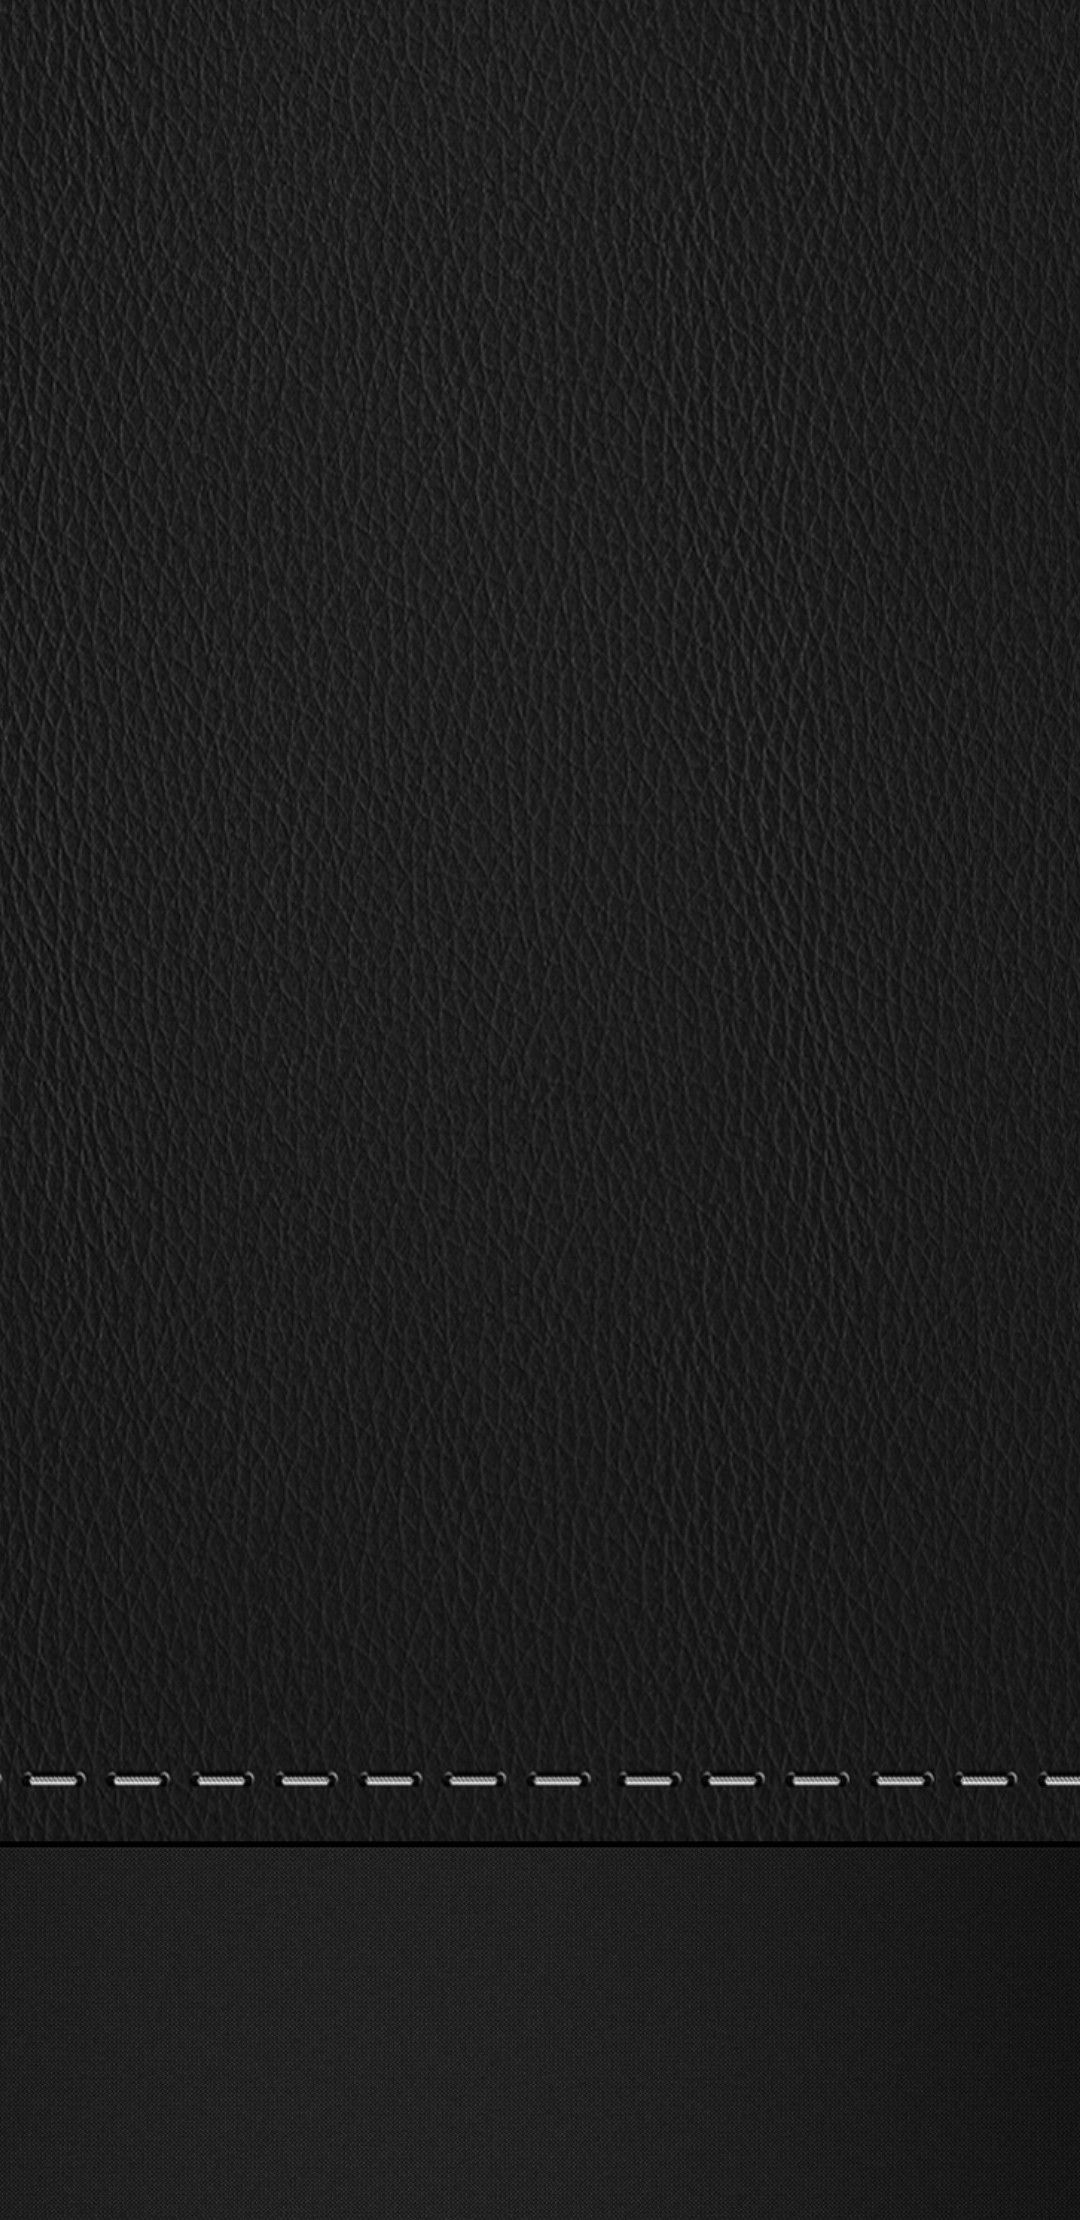 Stitched Leather In 2019 Cellphone Wallpaper Black